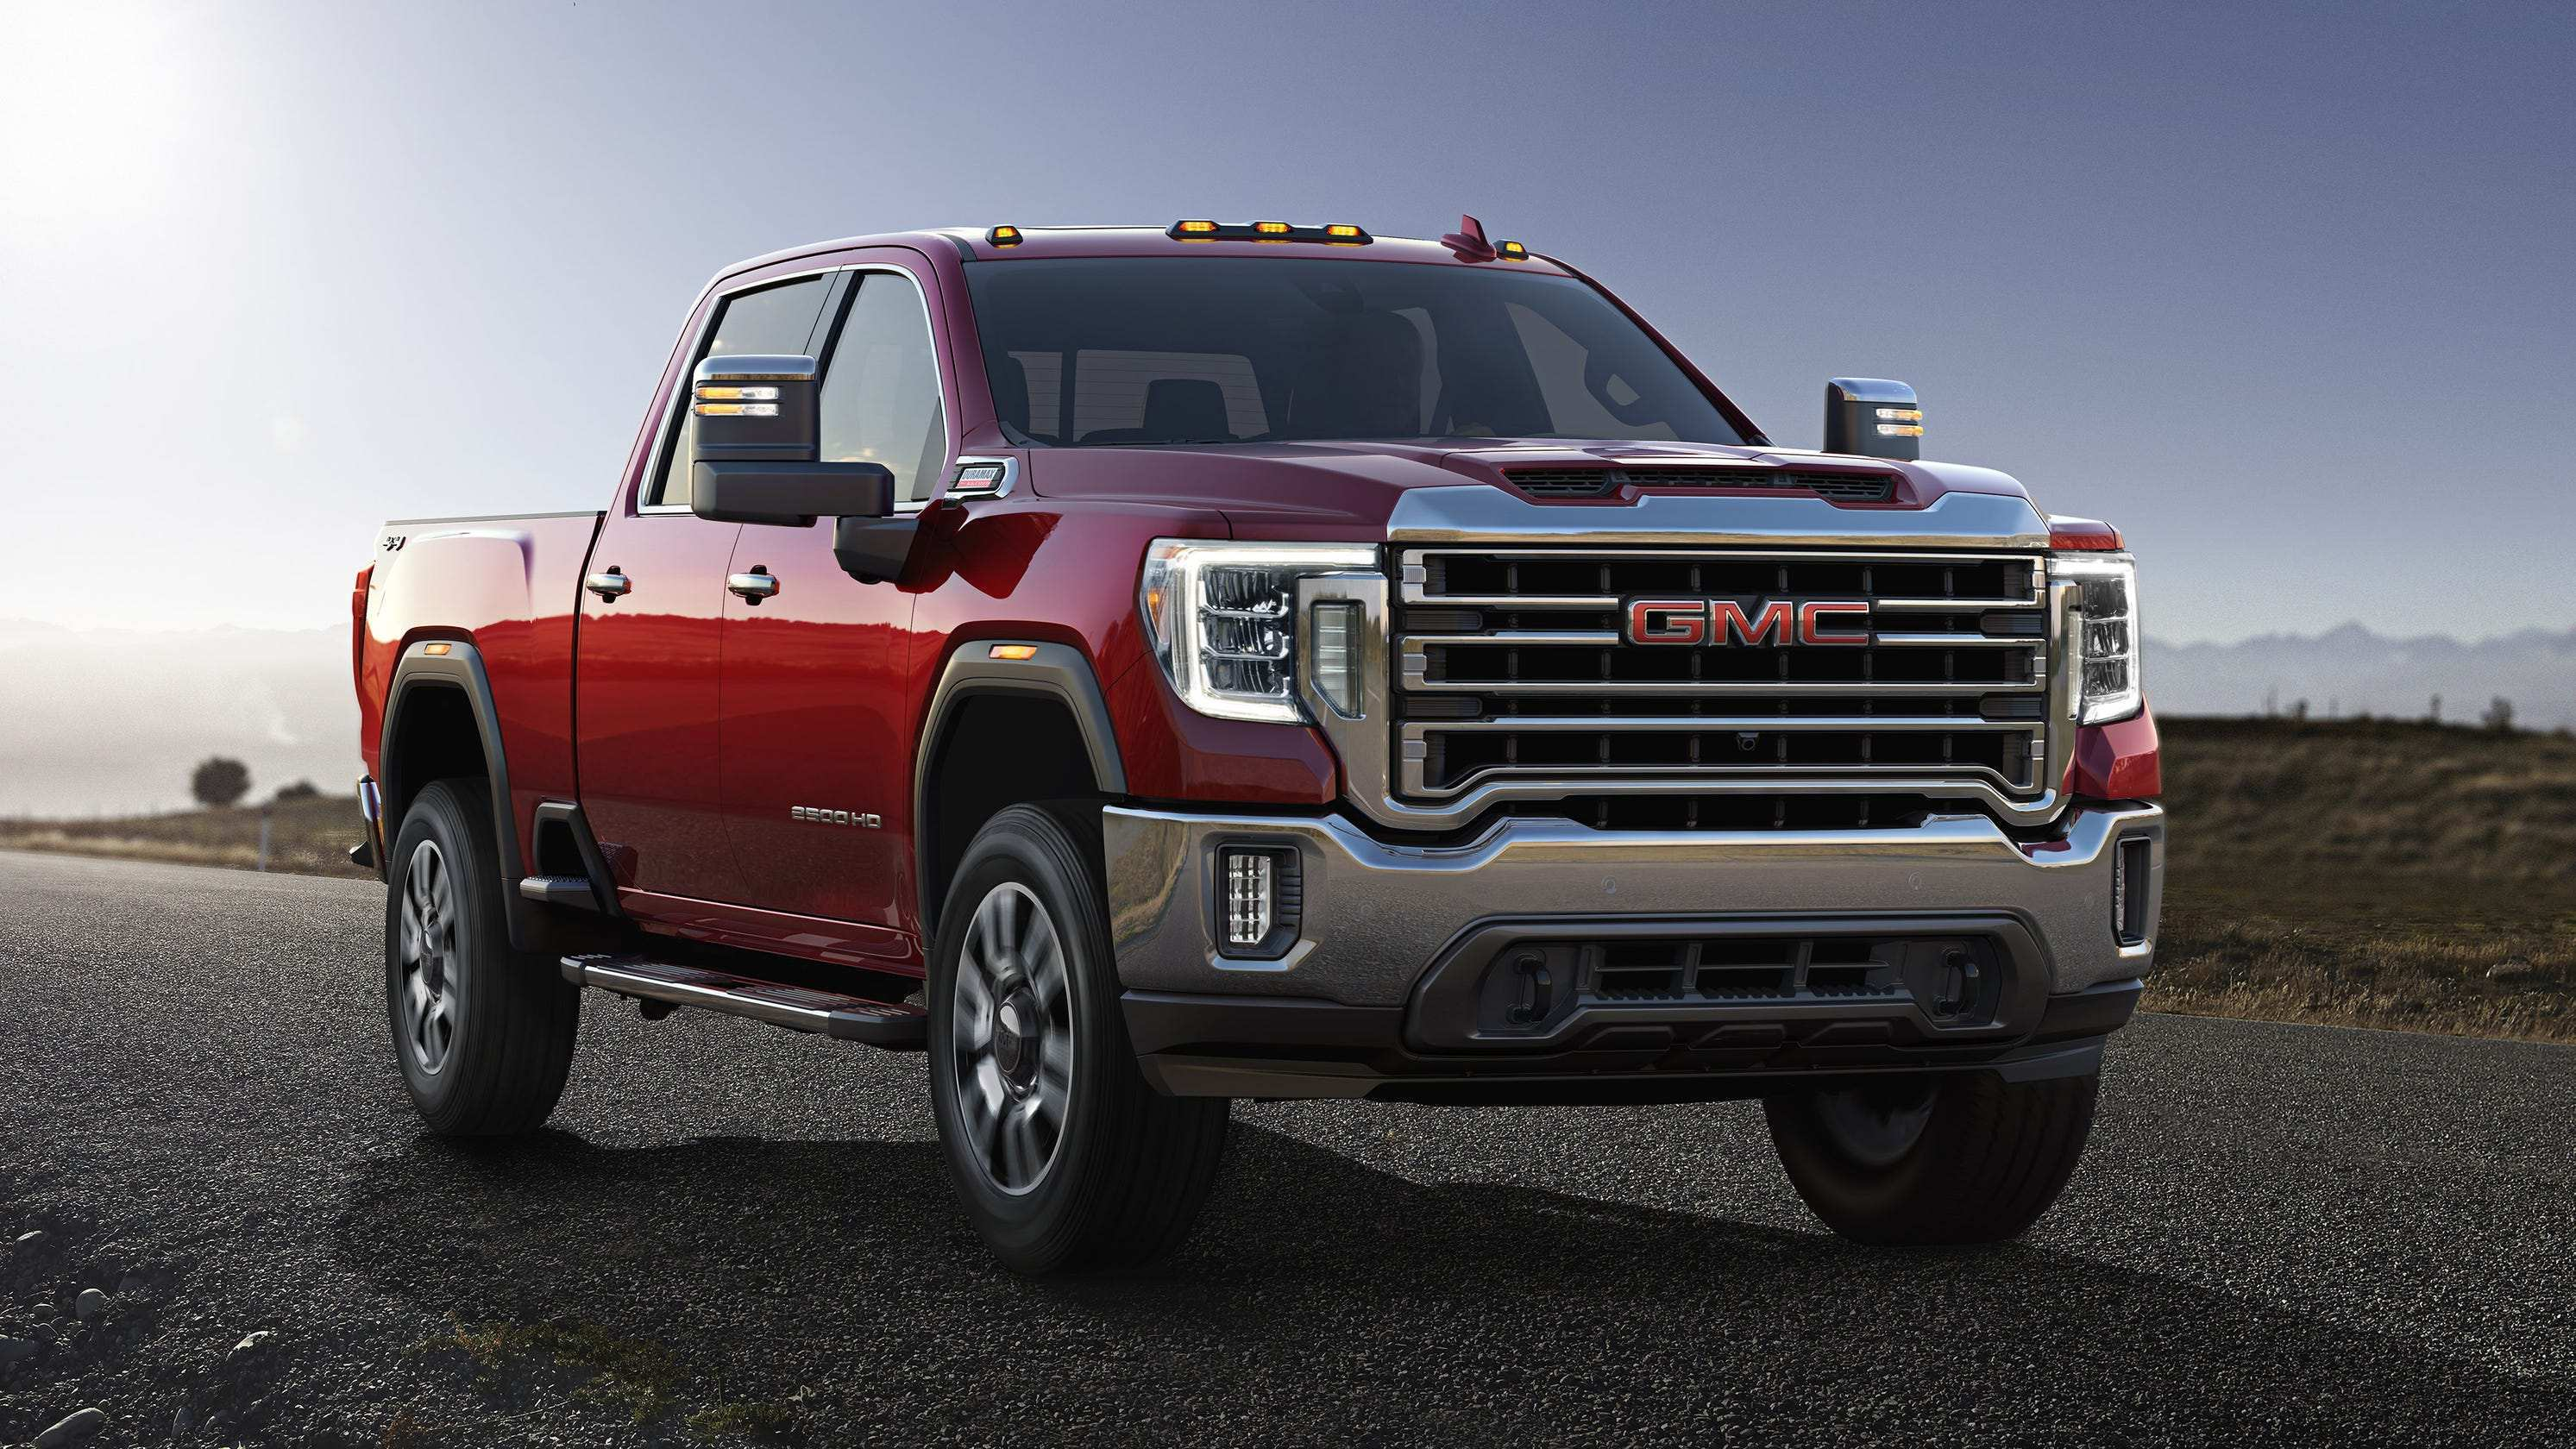 33 a gmc duramax 2020 new review  review cars 2020